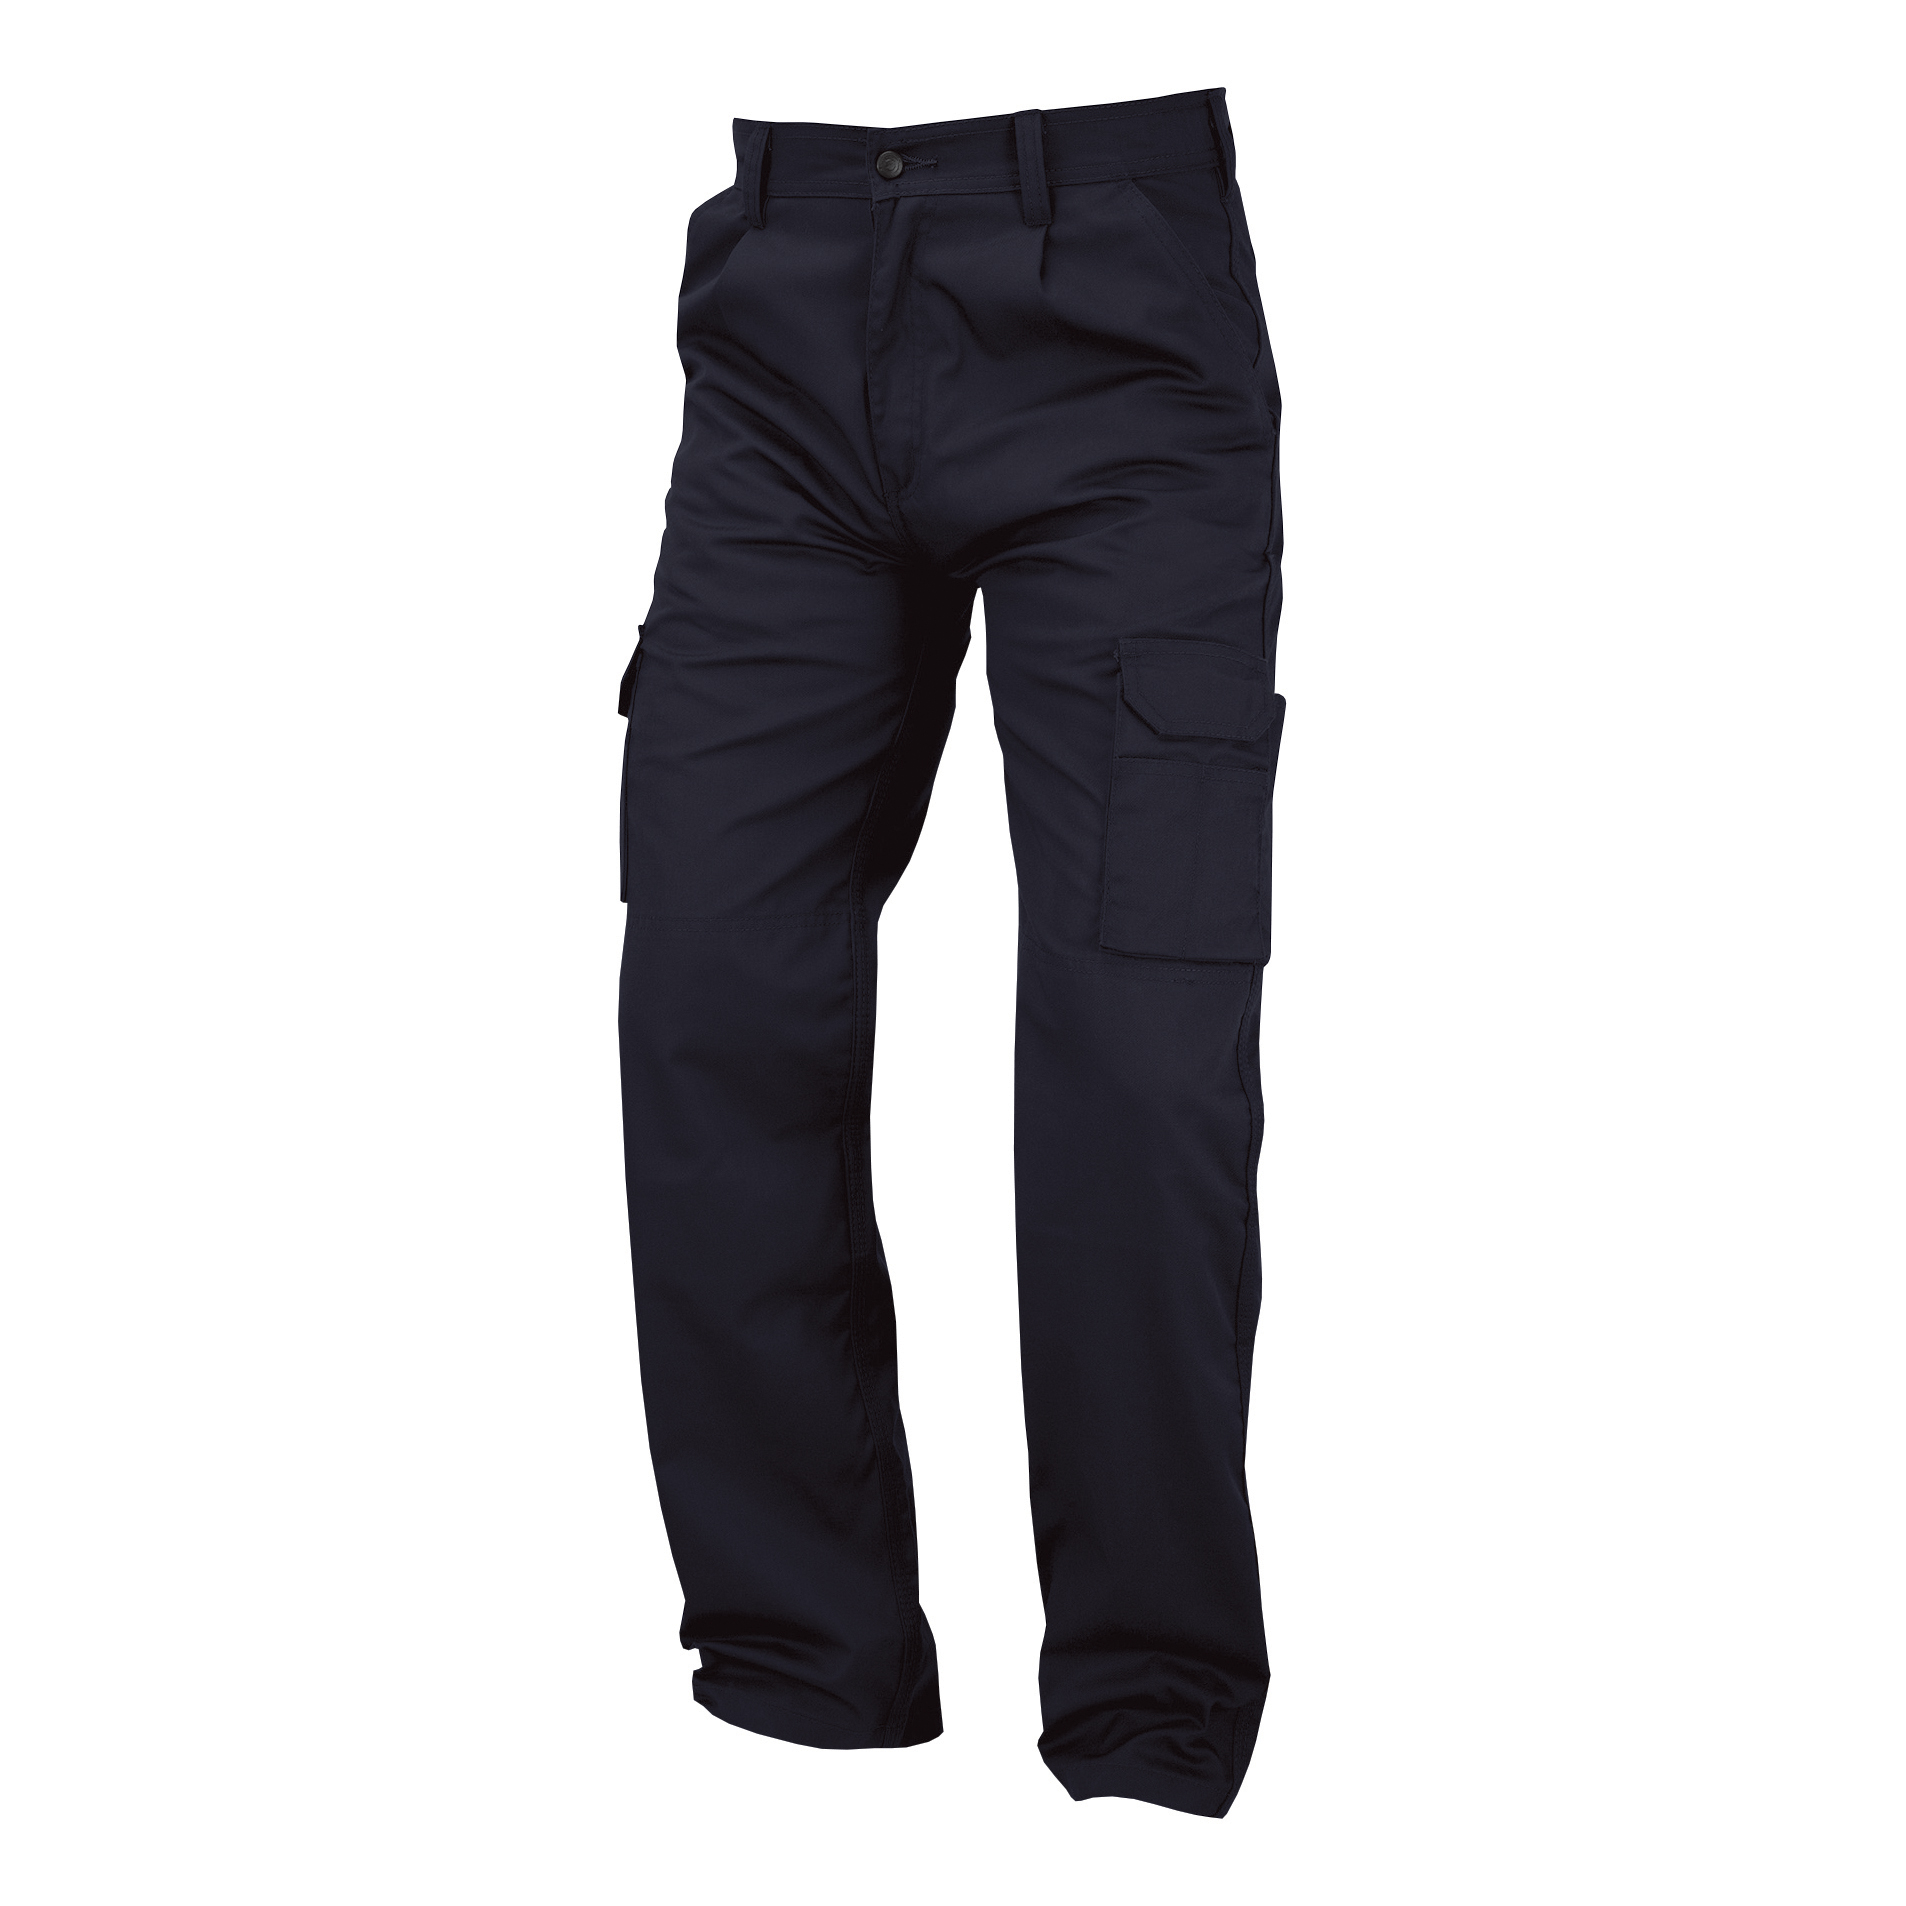 Combat Trousers Polycotton with Pockets 36in Regular Navy Blue Ref PCTHWN36 1-3 Days Lead Time